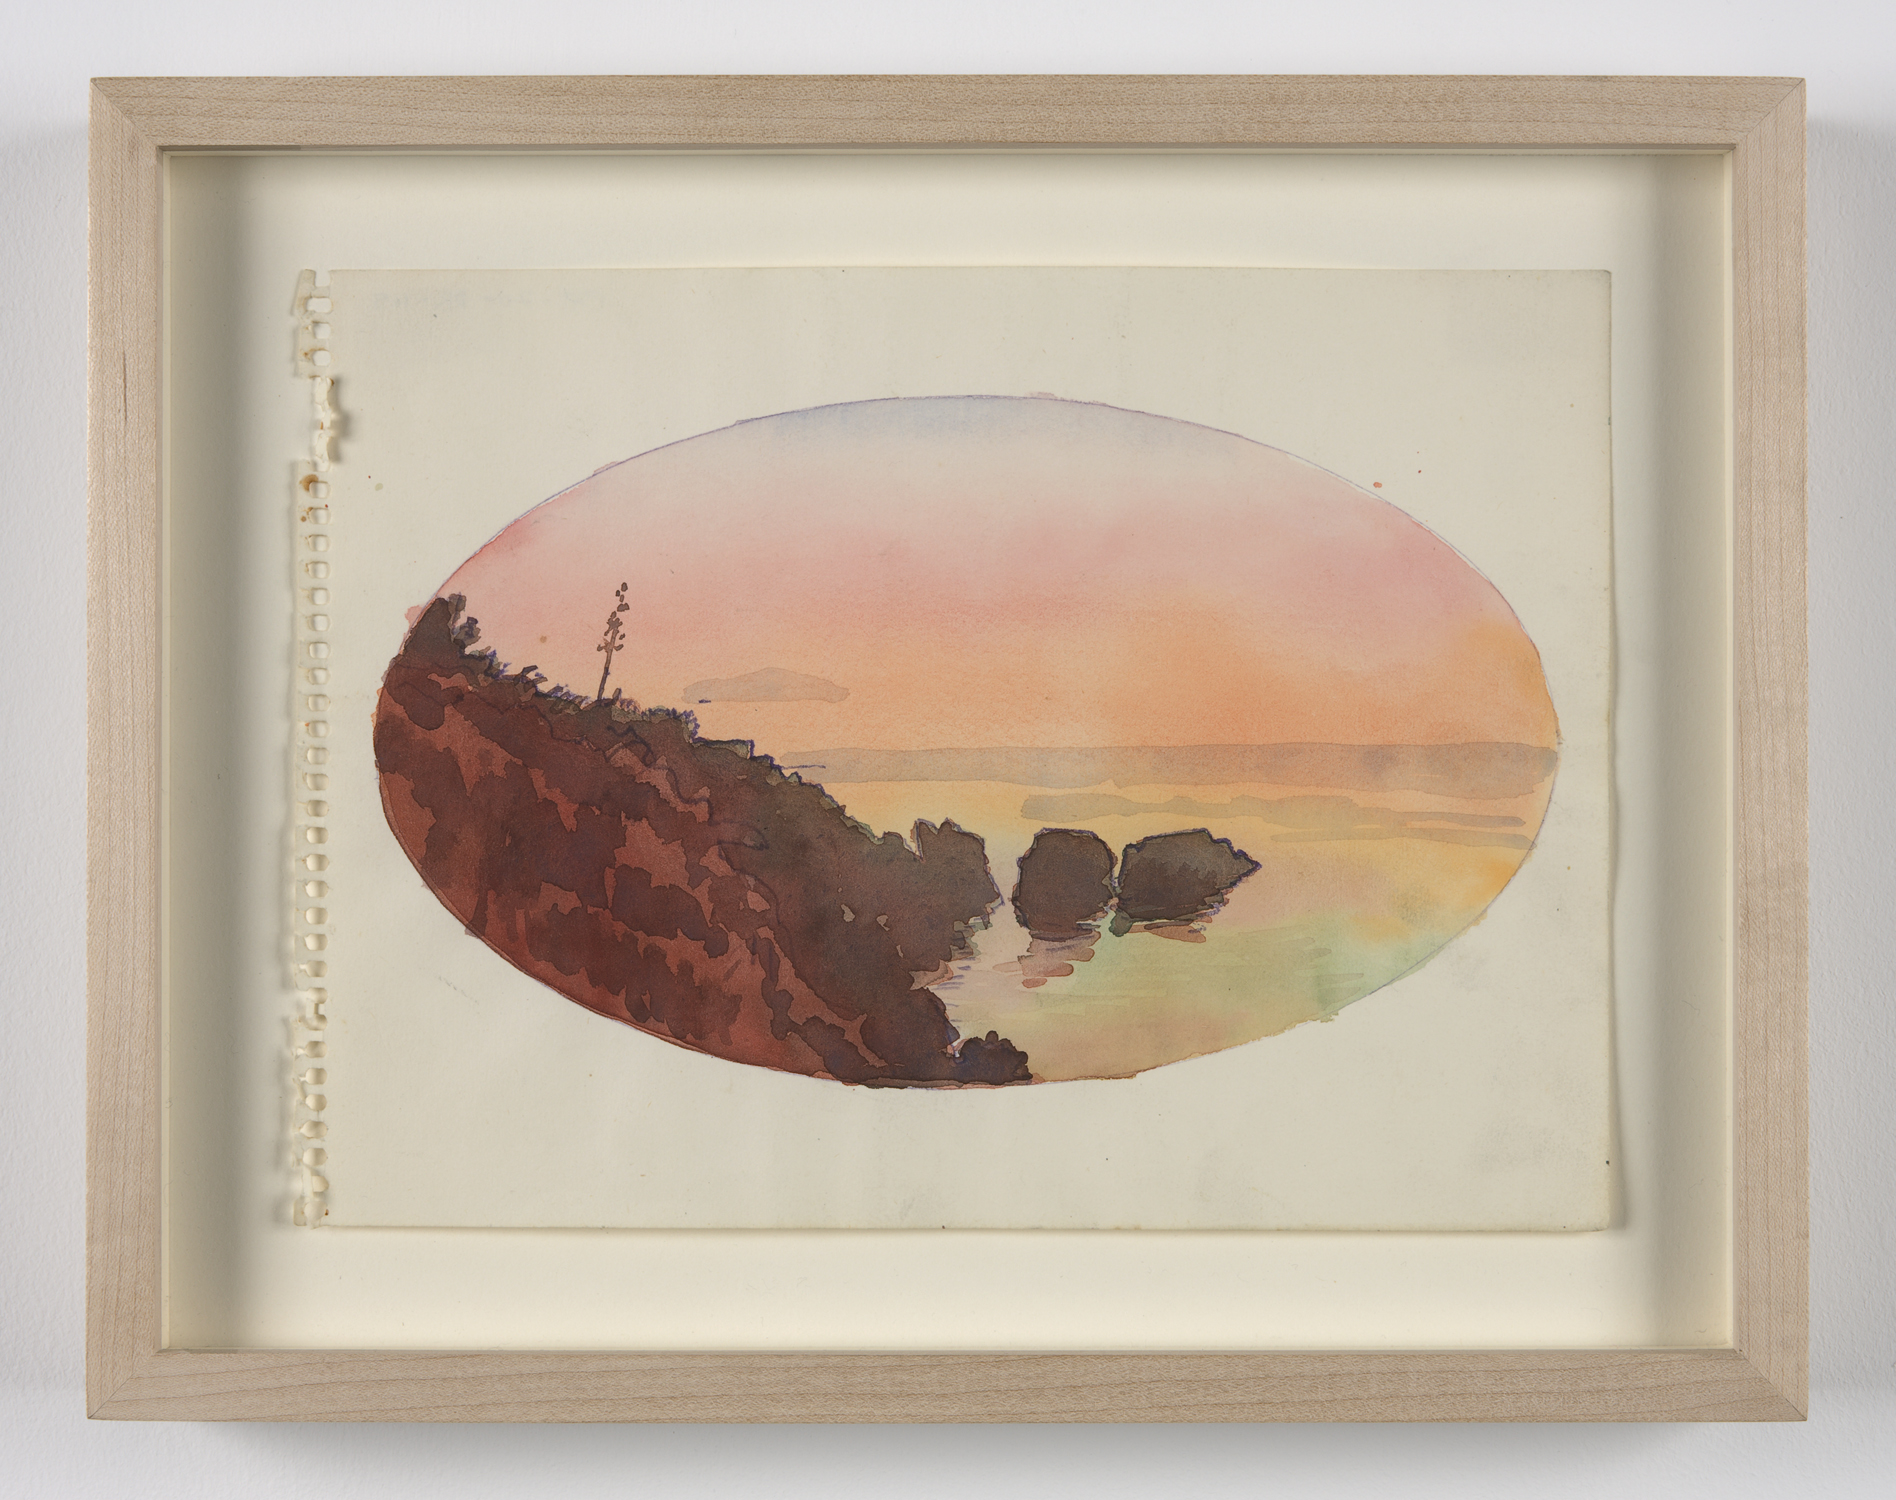 Untitled  (oval landscape) ca. 1970 watercolor and colored pencil on paper 7 x 91⁄2 in/18 x 24 cm Photo: Joerg Lohse ©Estate of George Paul Thek, Courtesy Alexander and Bonin, New York